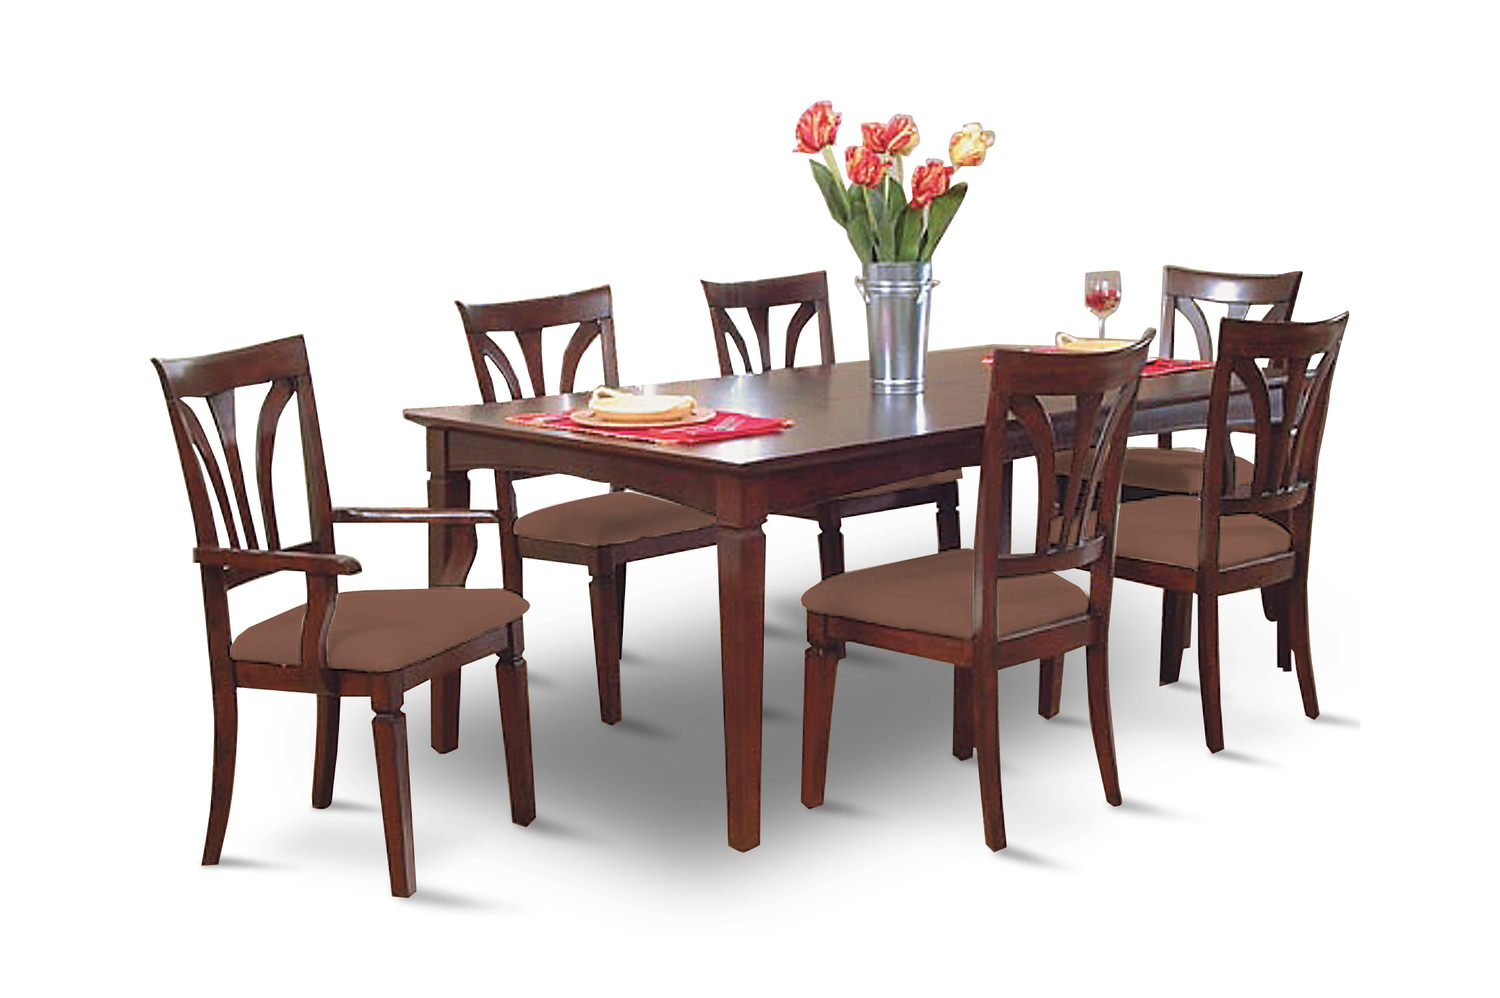 Image Madison Avenue Dining Table With 4 Side Chairs And 2 Arm Chairs.